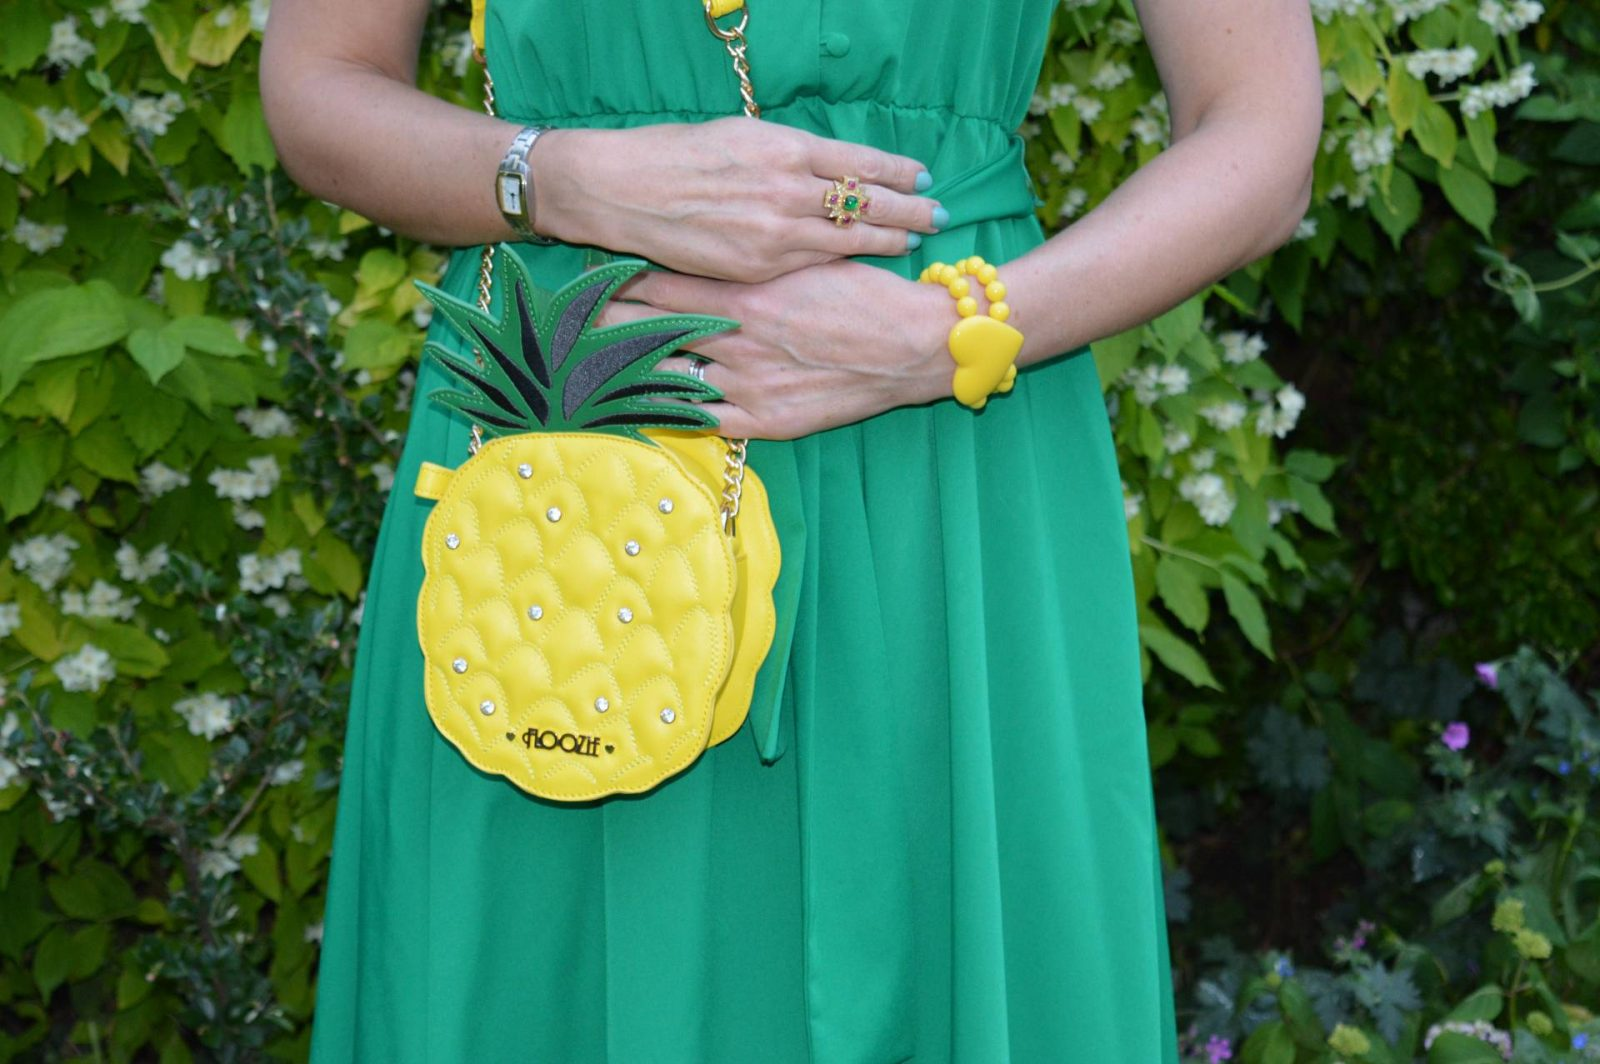 Zara Green midi dress and pineapple bag, Les Nereides heart bracelet